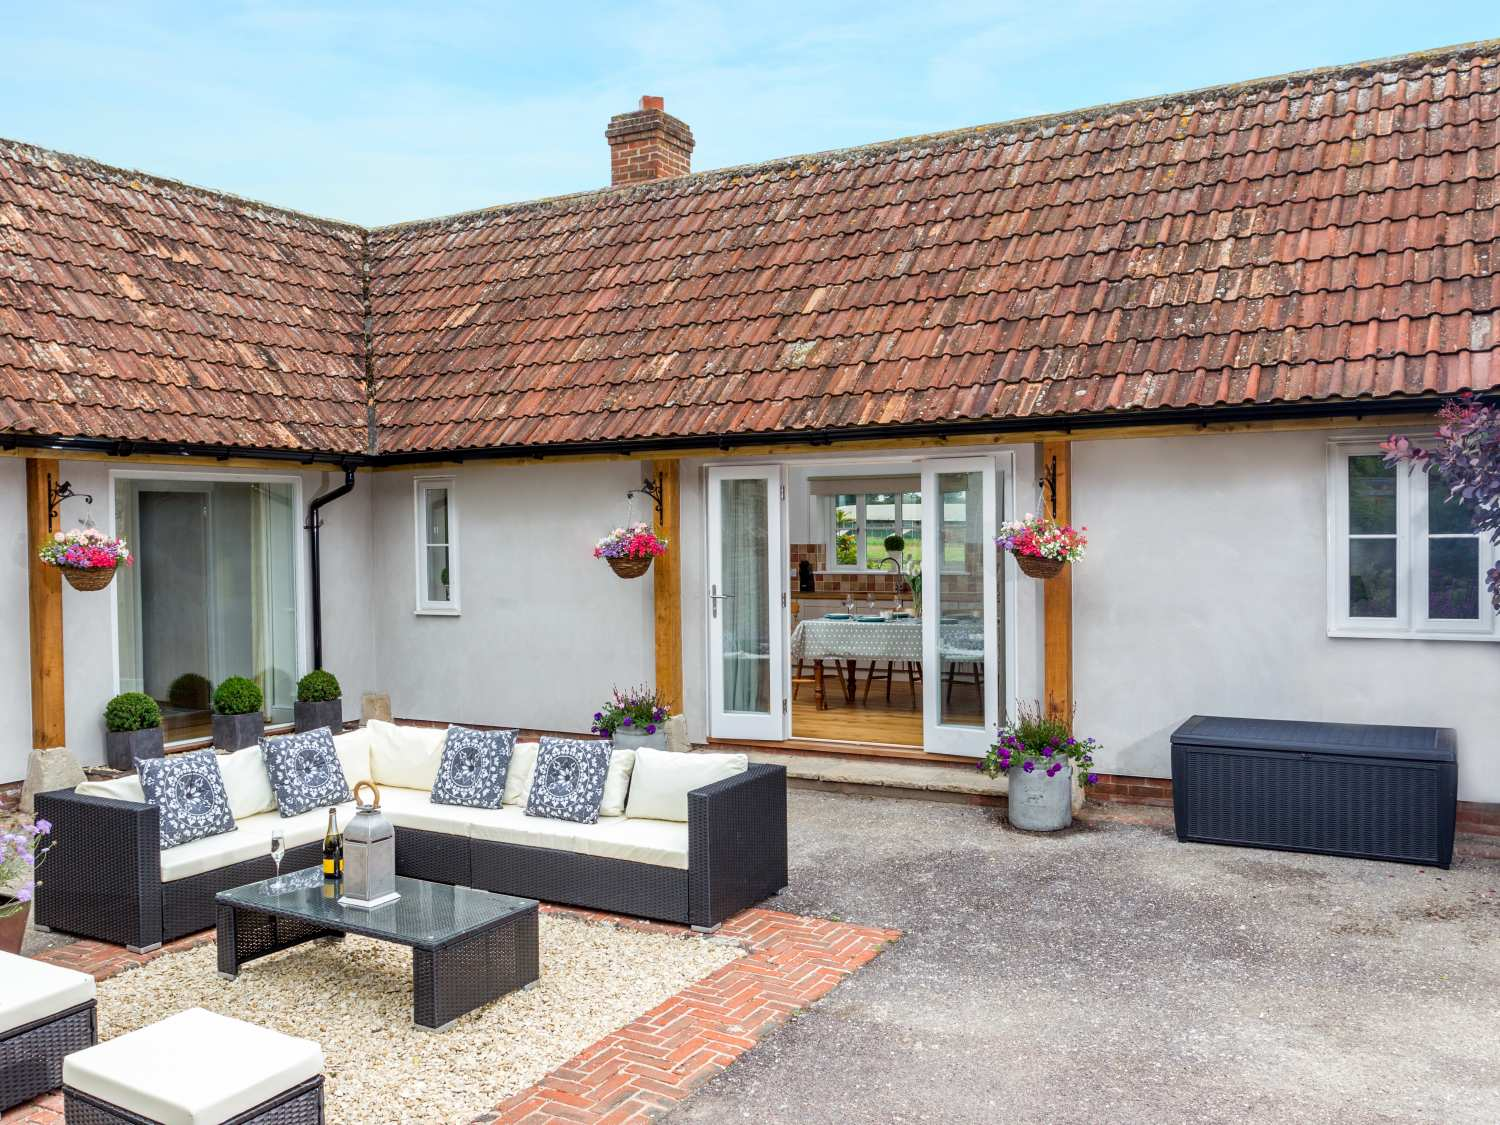 The Farm House Holiday Cottage Upper Seagry5